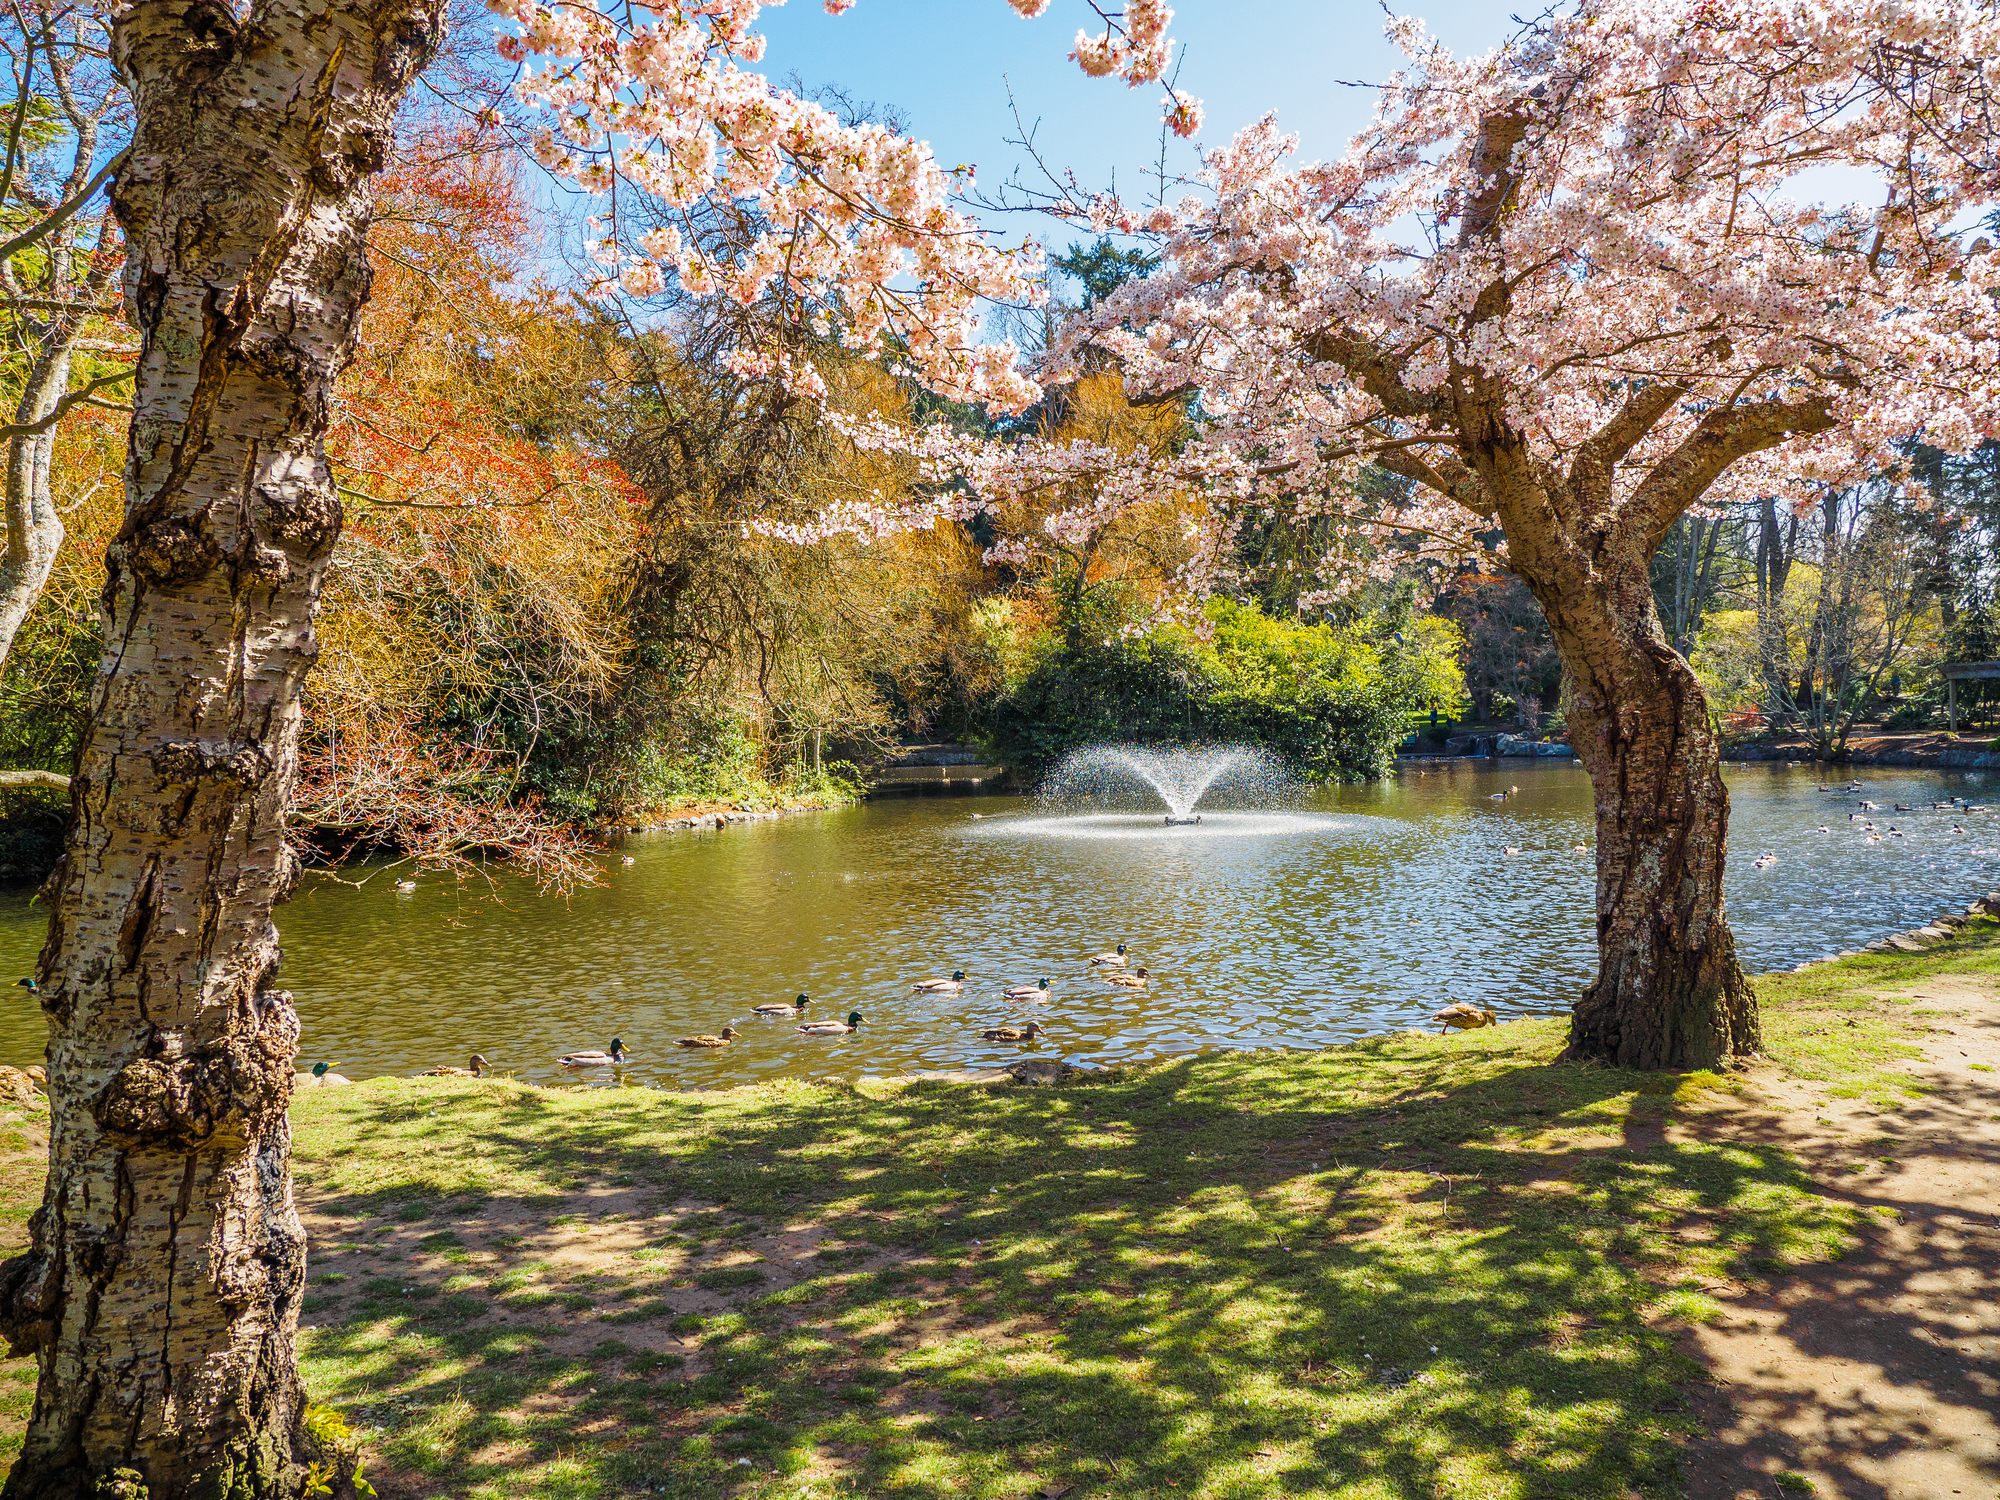 The Top 7 Things To Do in Beacon Hill Park